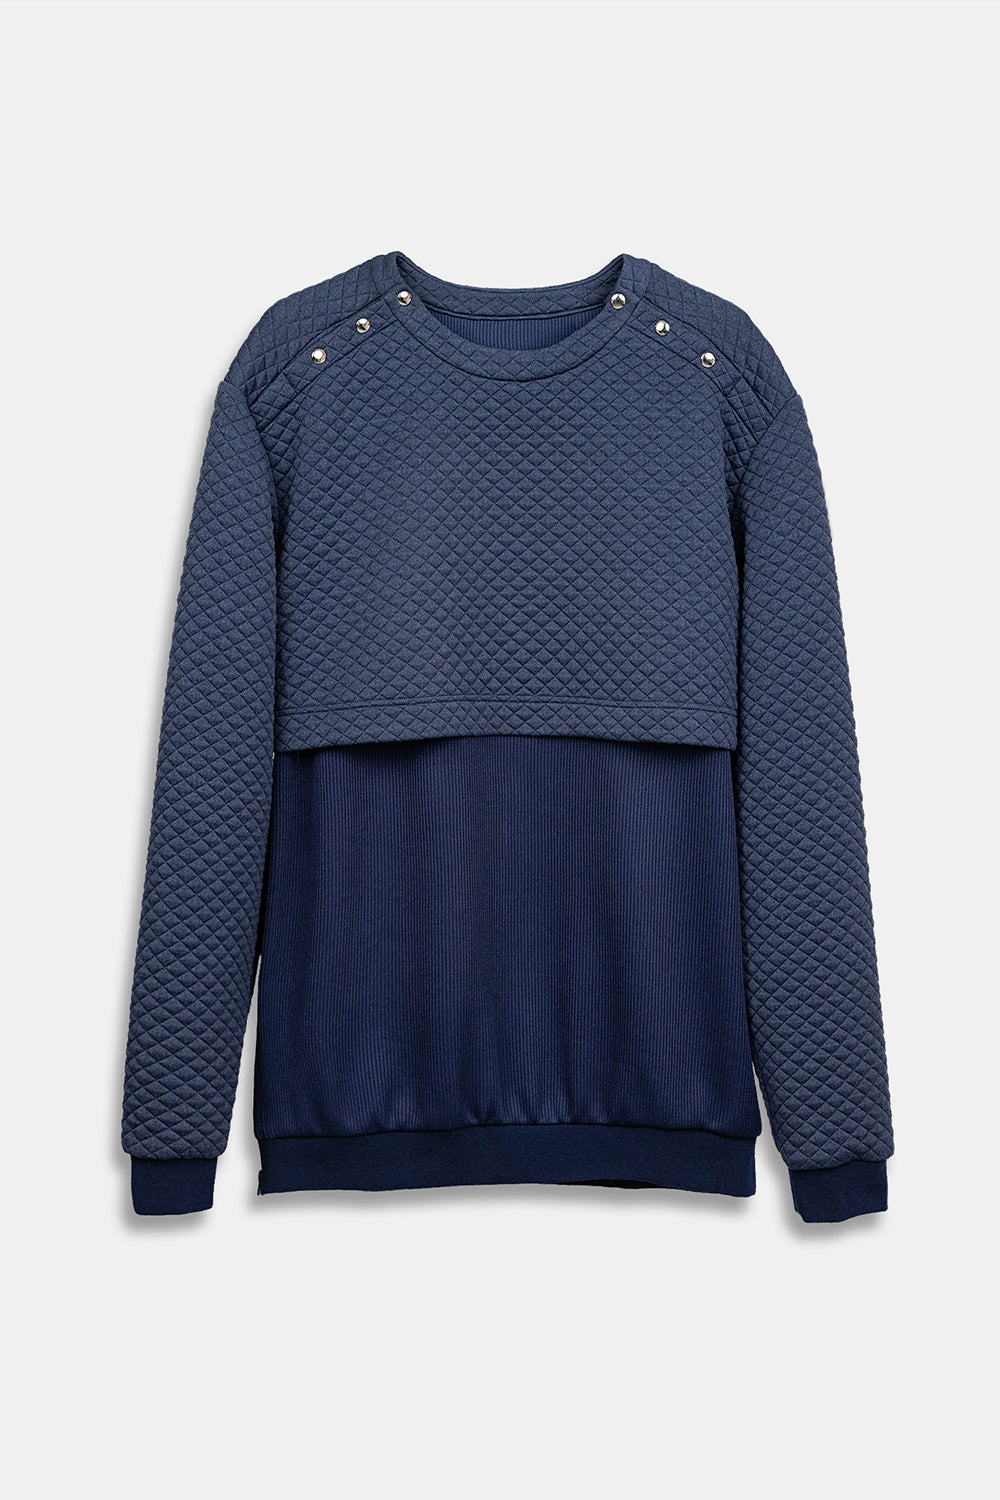 SEANNUNG -深藍色雙層剪裁大學T Double-Layer Cutting Top in Navy- Men